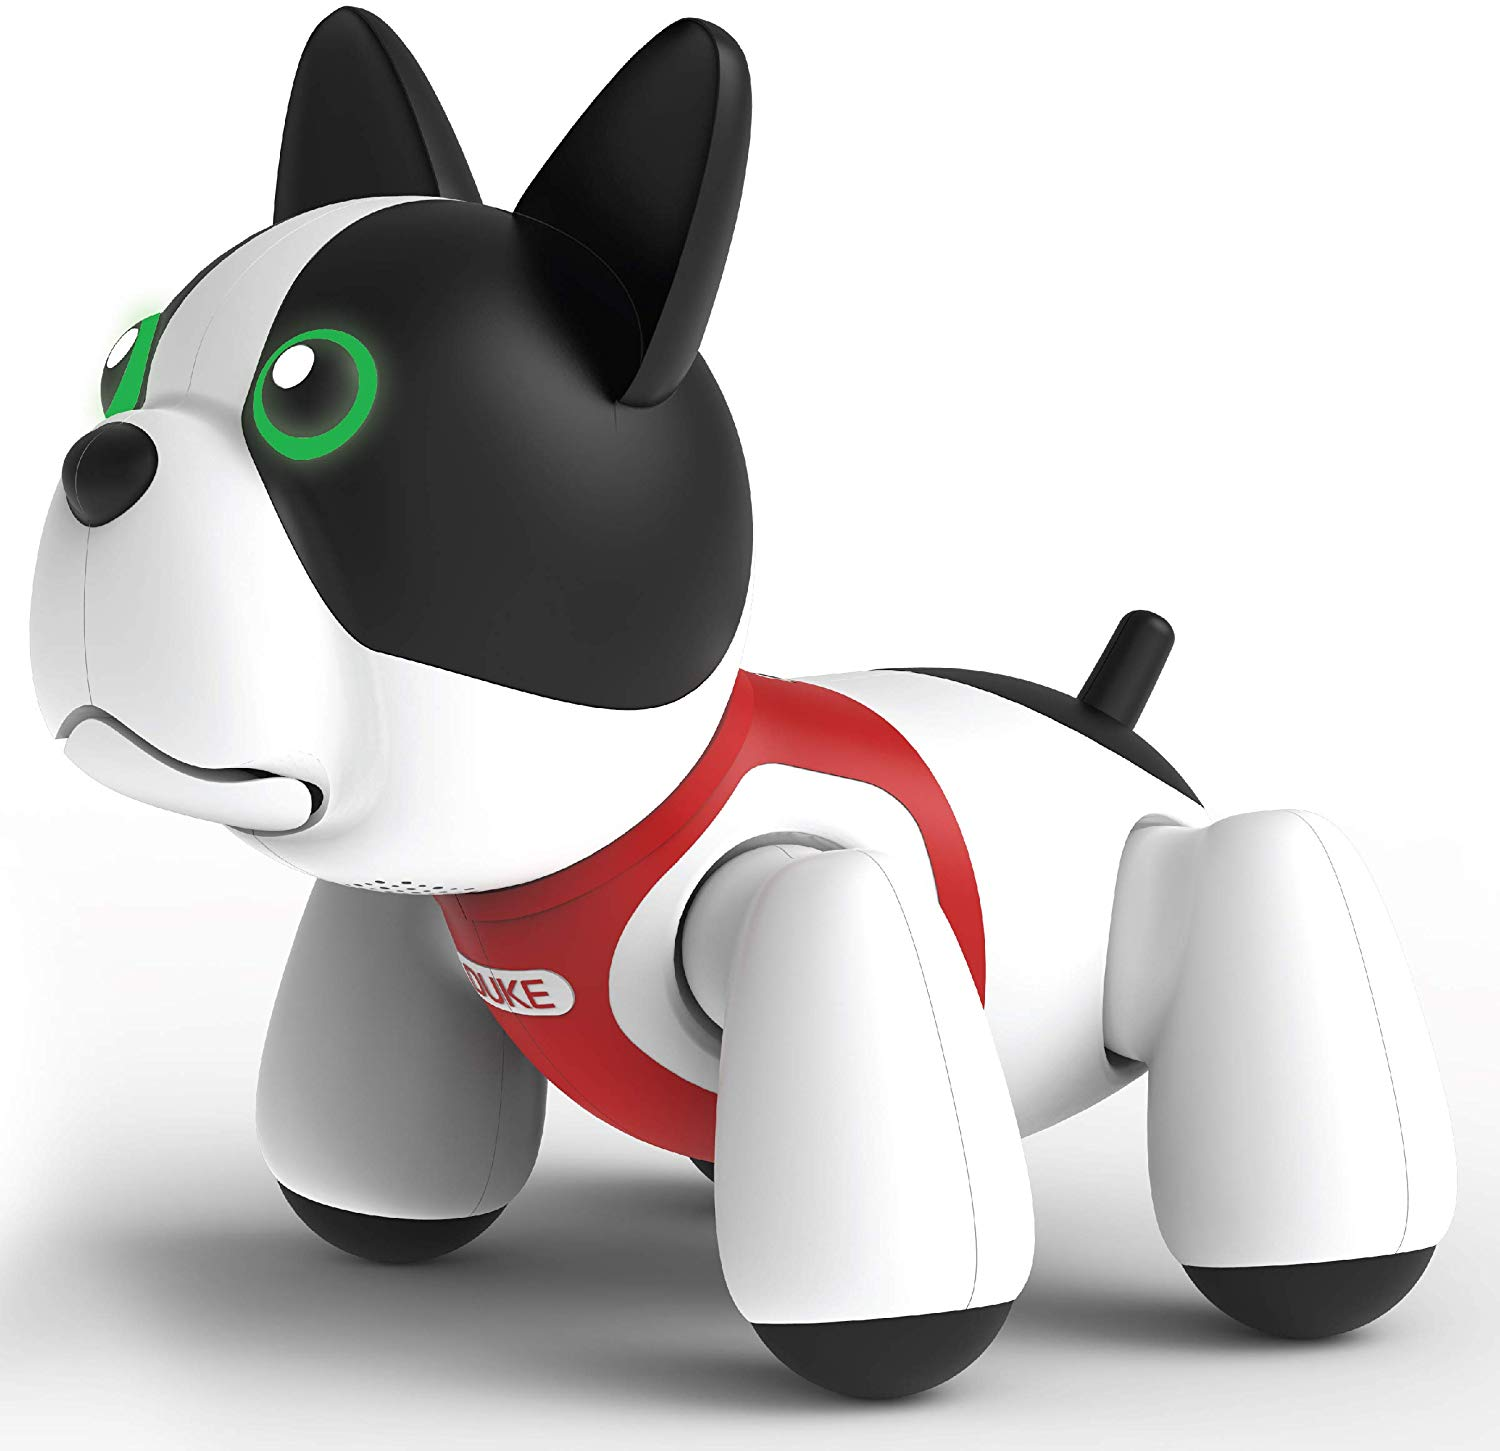 SHARPER IMAGE RC Toy Duke The Trainable Robotic Puppy Dog